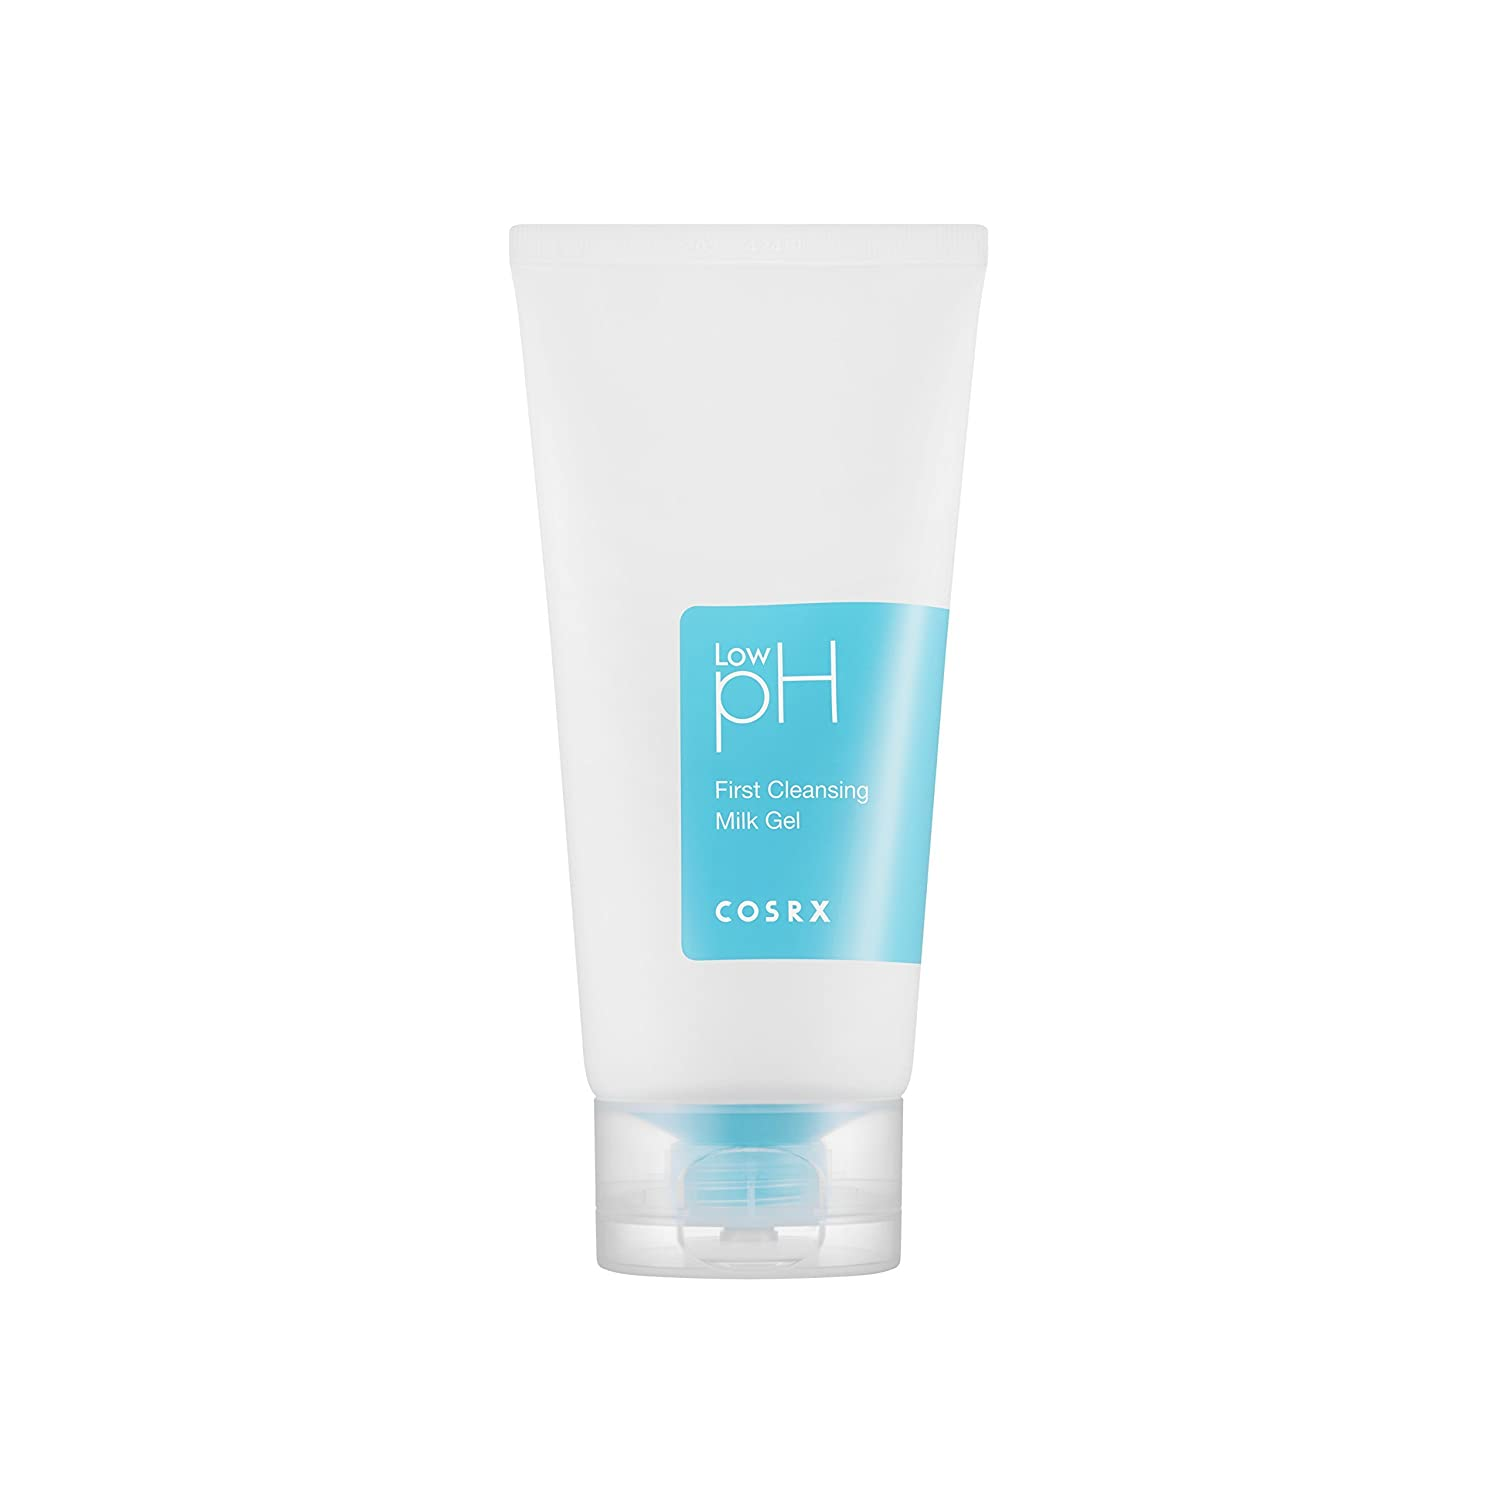 COSRX Low pH First Cleansing Milk Gel, 150ml - Sunscreen Remover COSRX Inc.